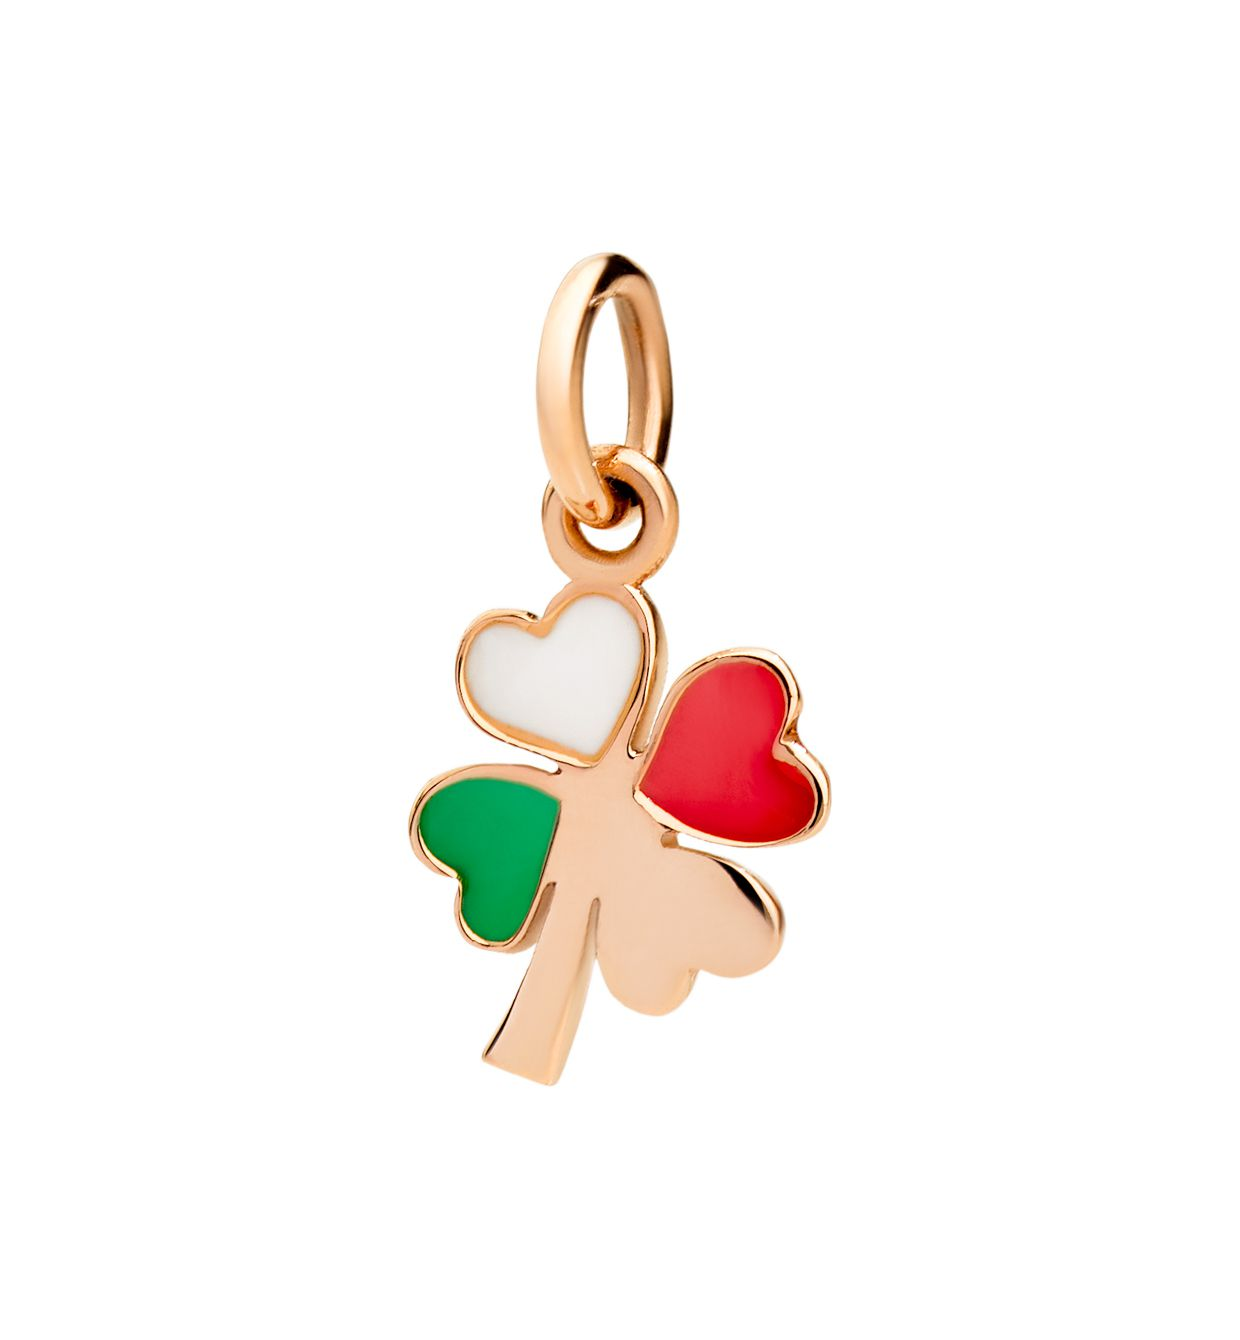 DoDo Four Leaf Clover in 9k Rose Gold with Green, White and Red Enamels - Orsini Jewellers NZ